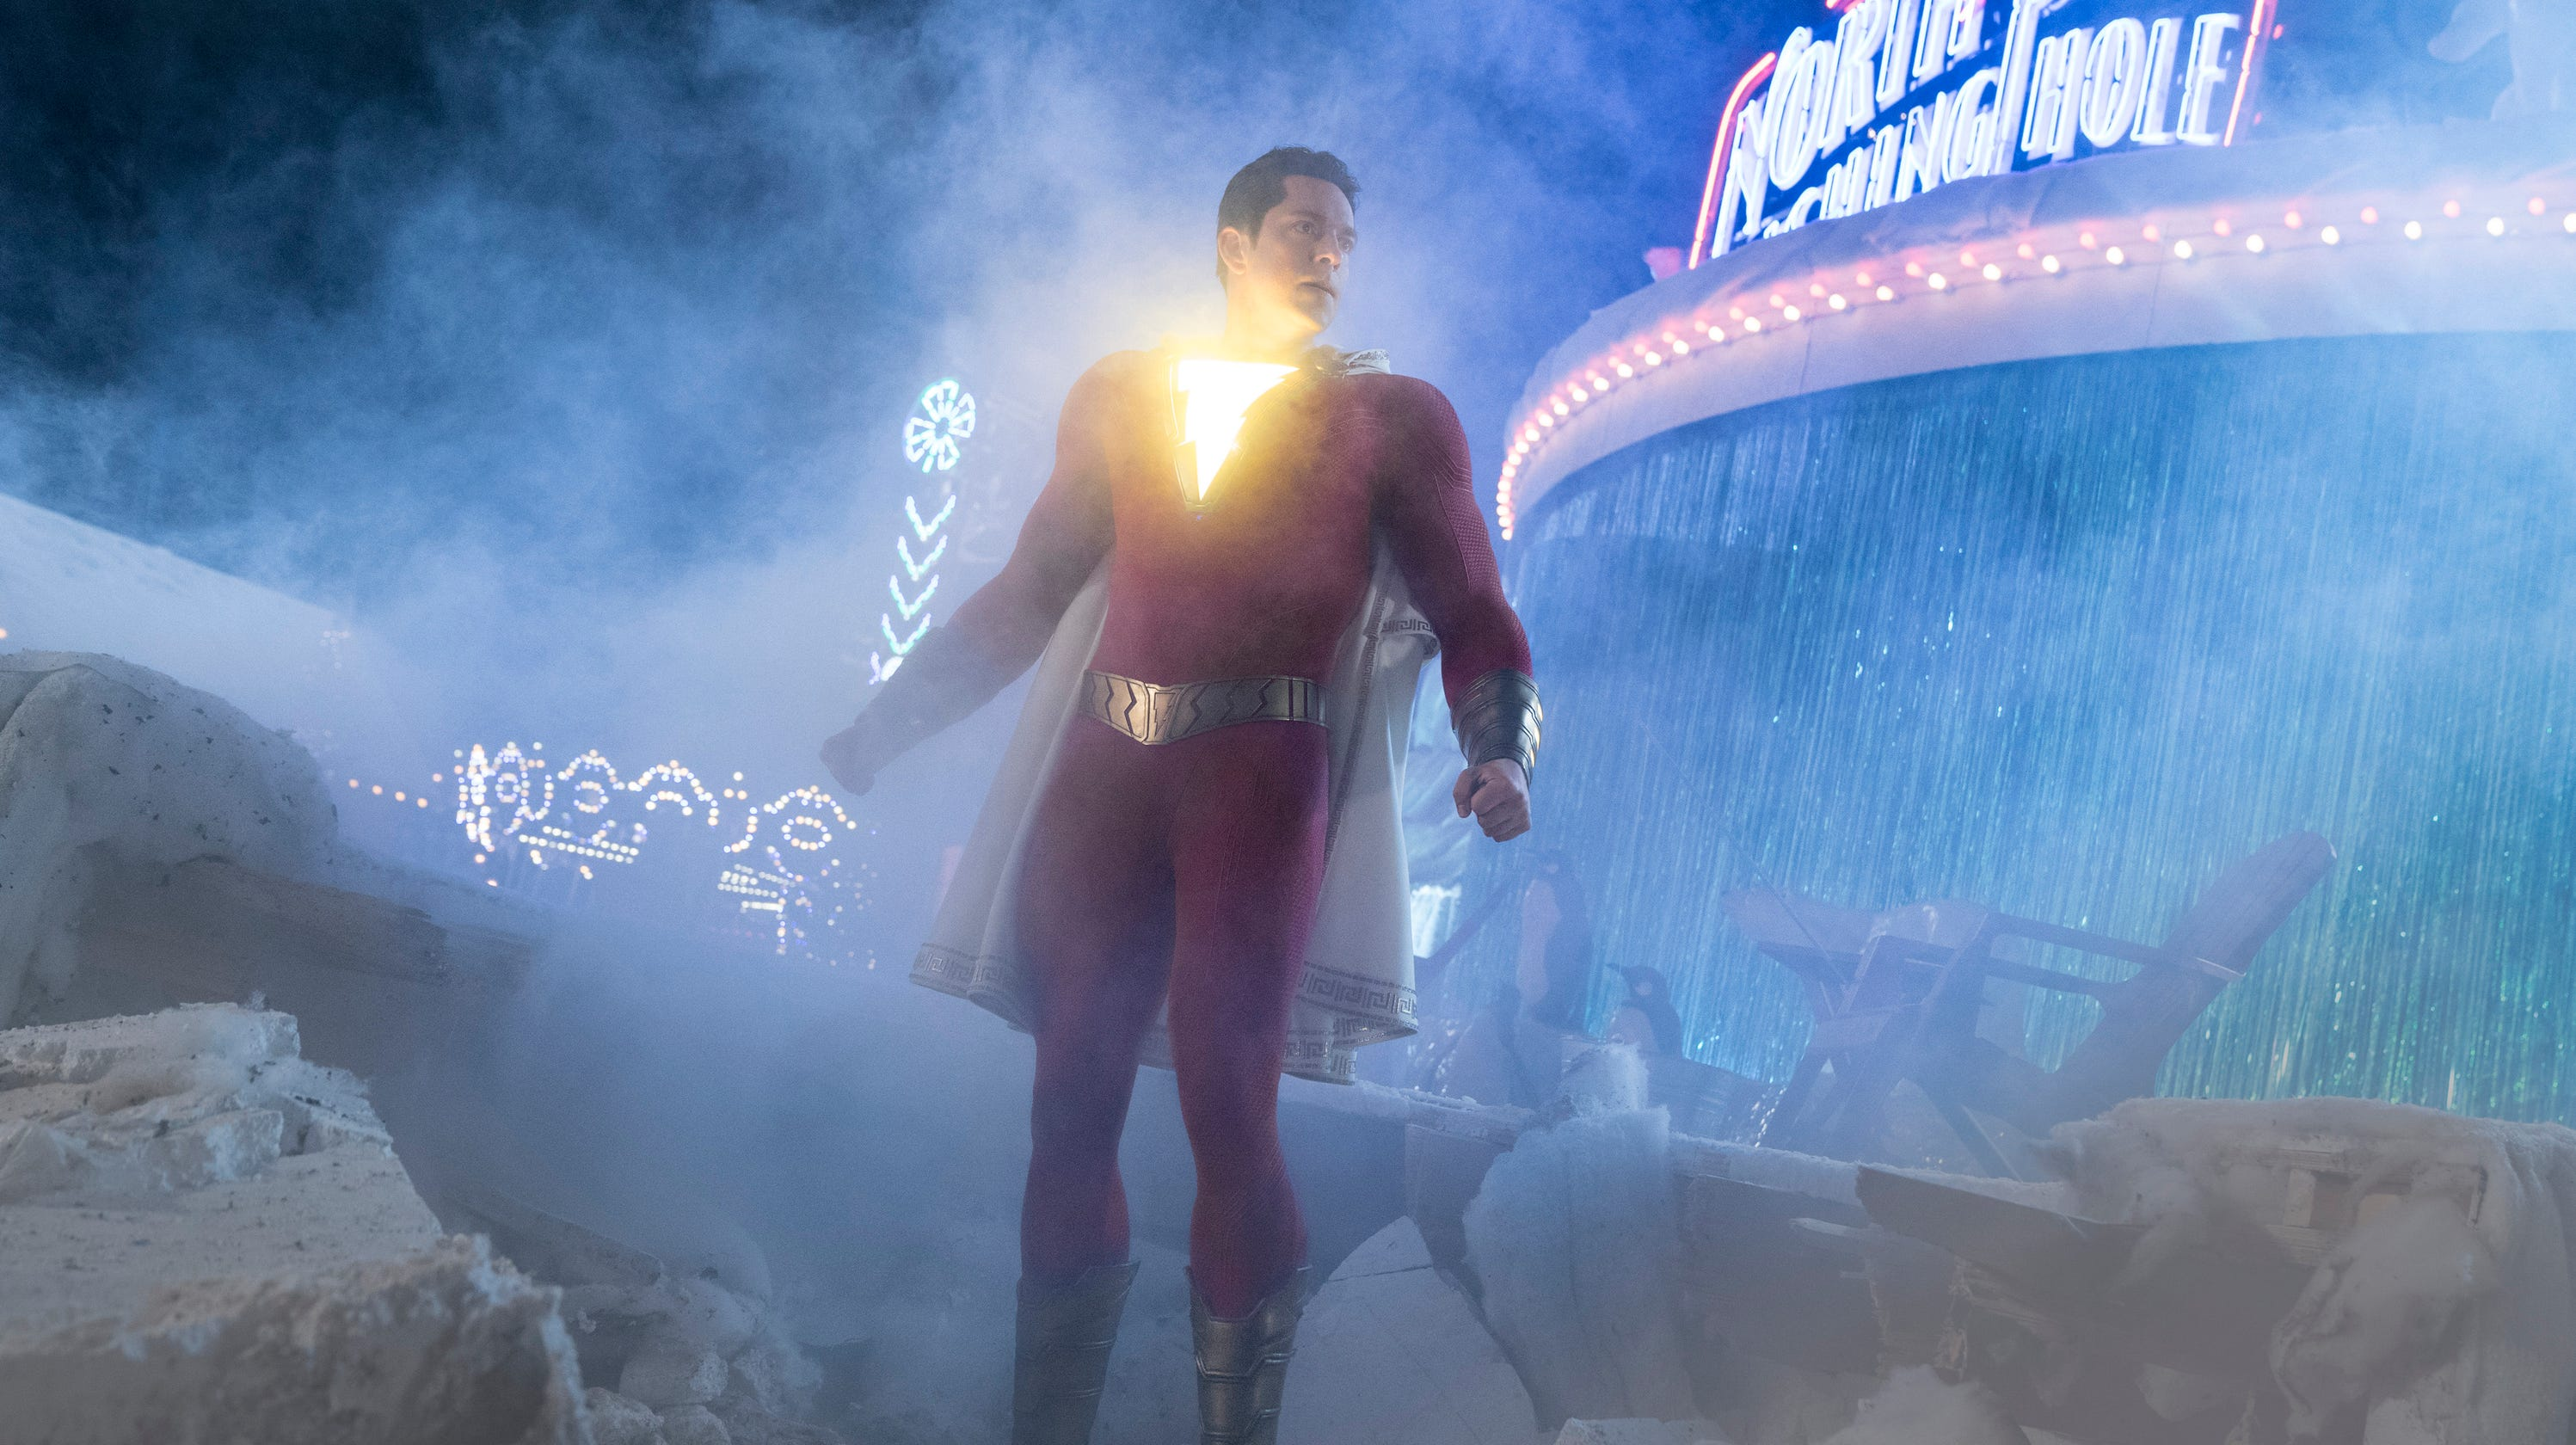 Review: 'Shazam!' finds lightning in a bottle with Zachary Levi's family-friendly superhero